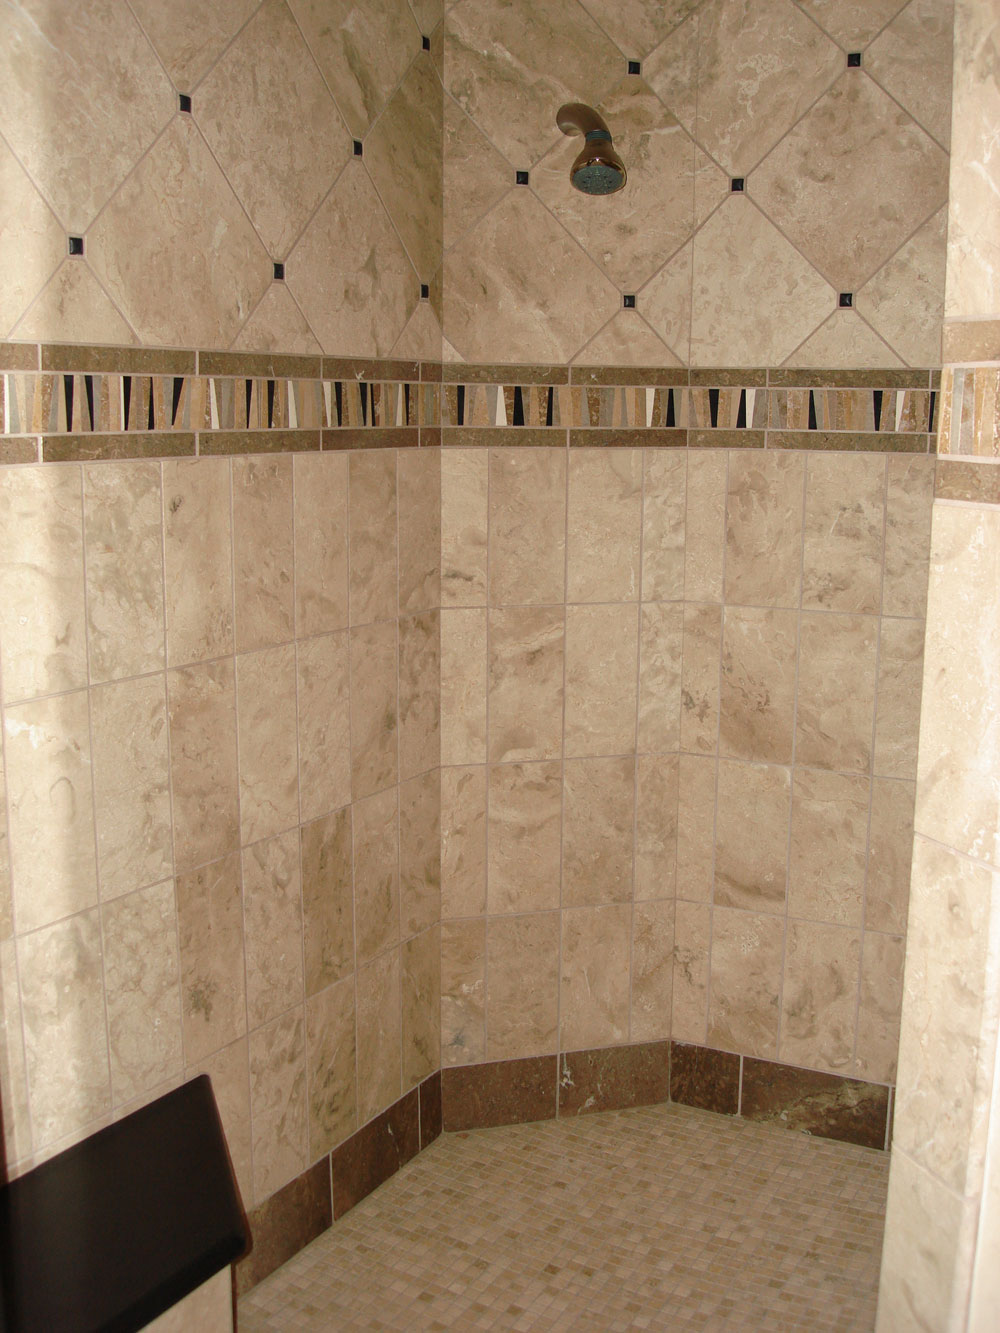 20 cool ideas travertine tile for shower walls with pictures. Black Bedroom Furniture Sets. Home Design Ideas